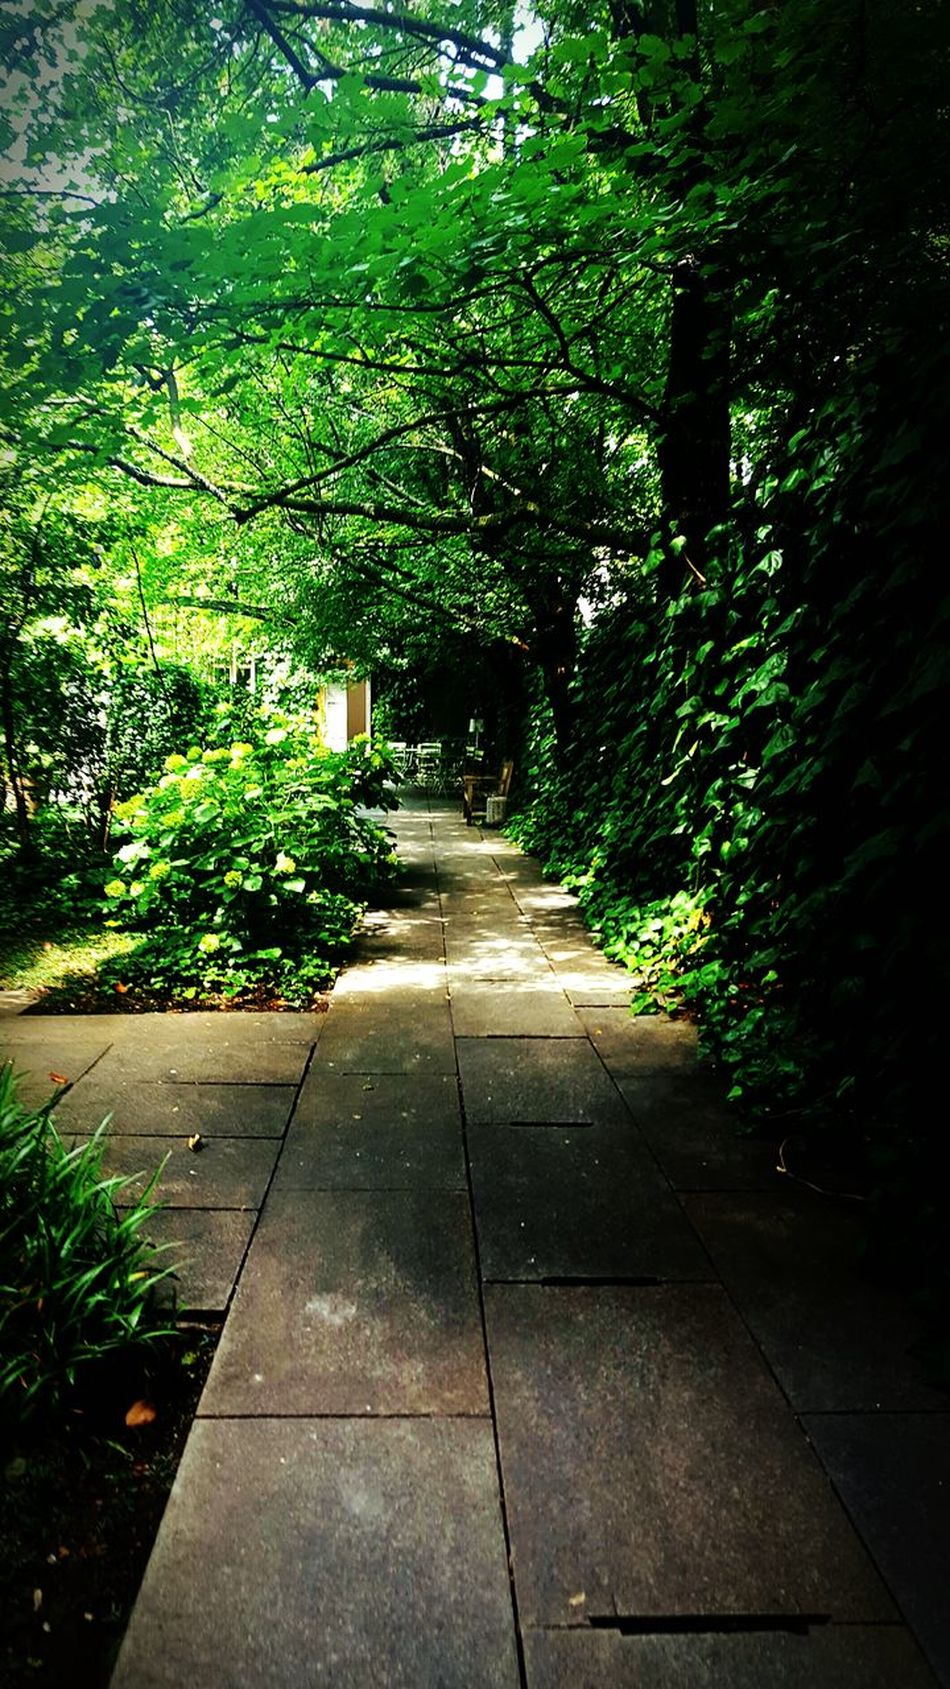 Plants Walk In The Forest Green Beautiful Atmospheric Mood Atmosphere Nature Beauty In Nature Outdoors Leaf Growth Dreamer's Vision Adapted To The City The Secret Spaces